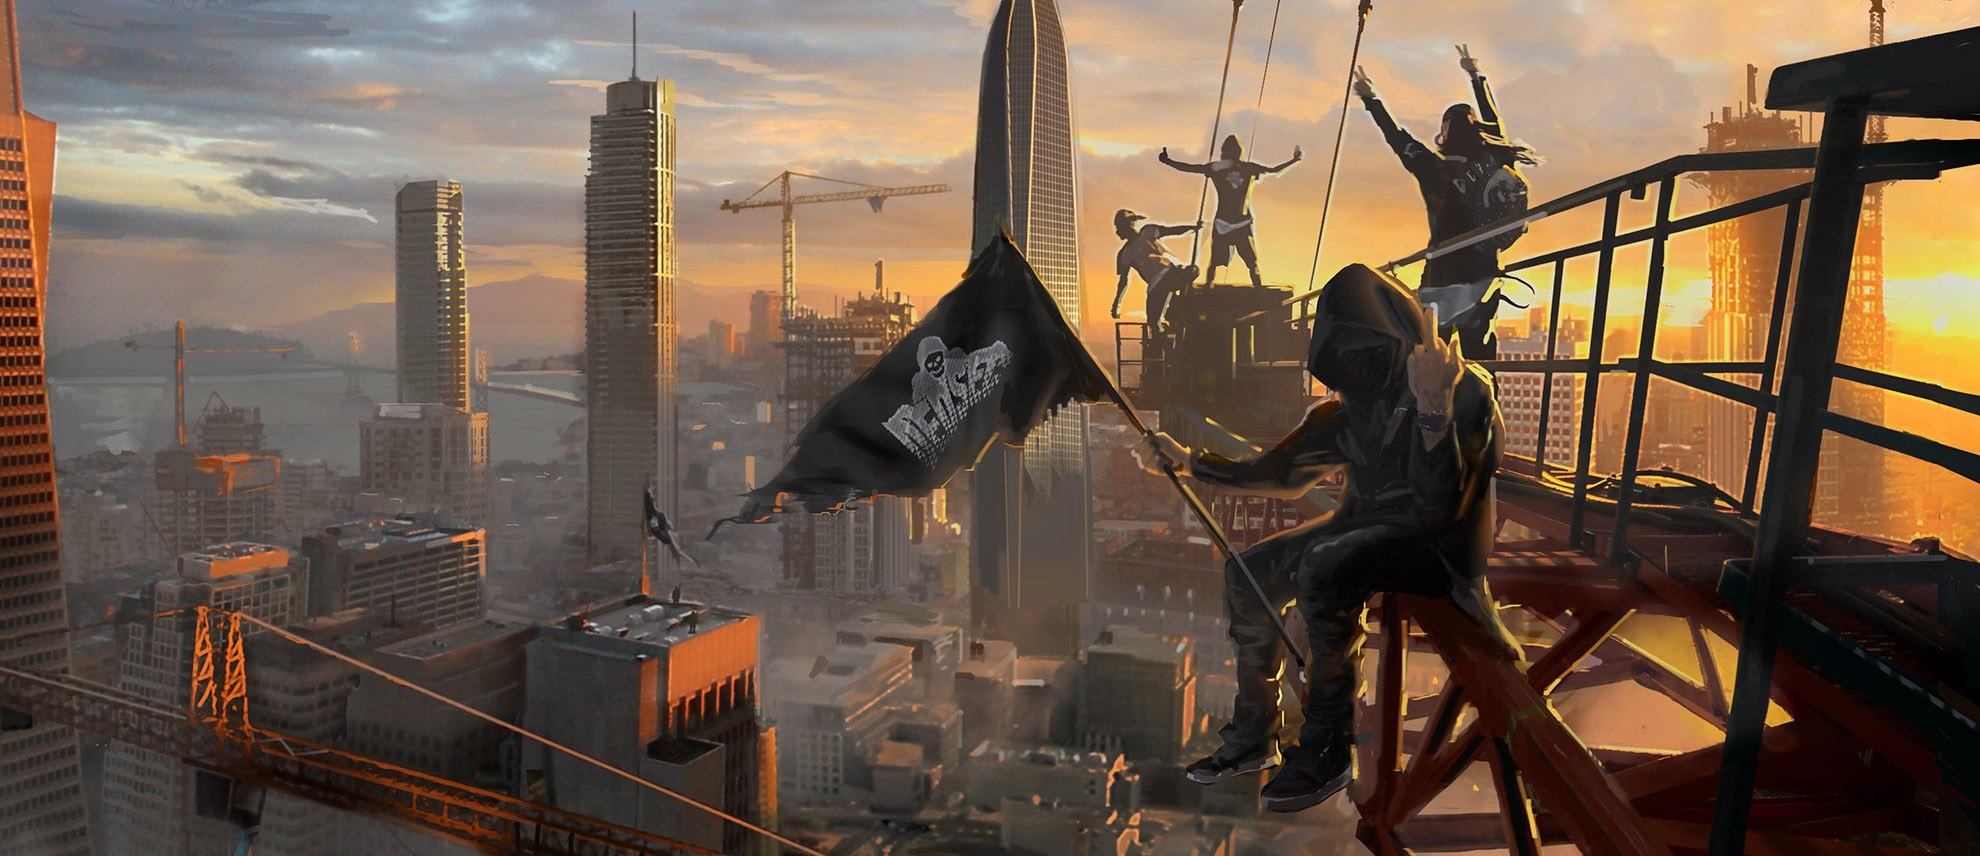 watch dogs 2; DedSec